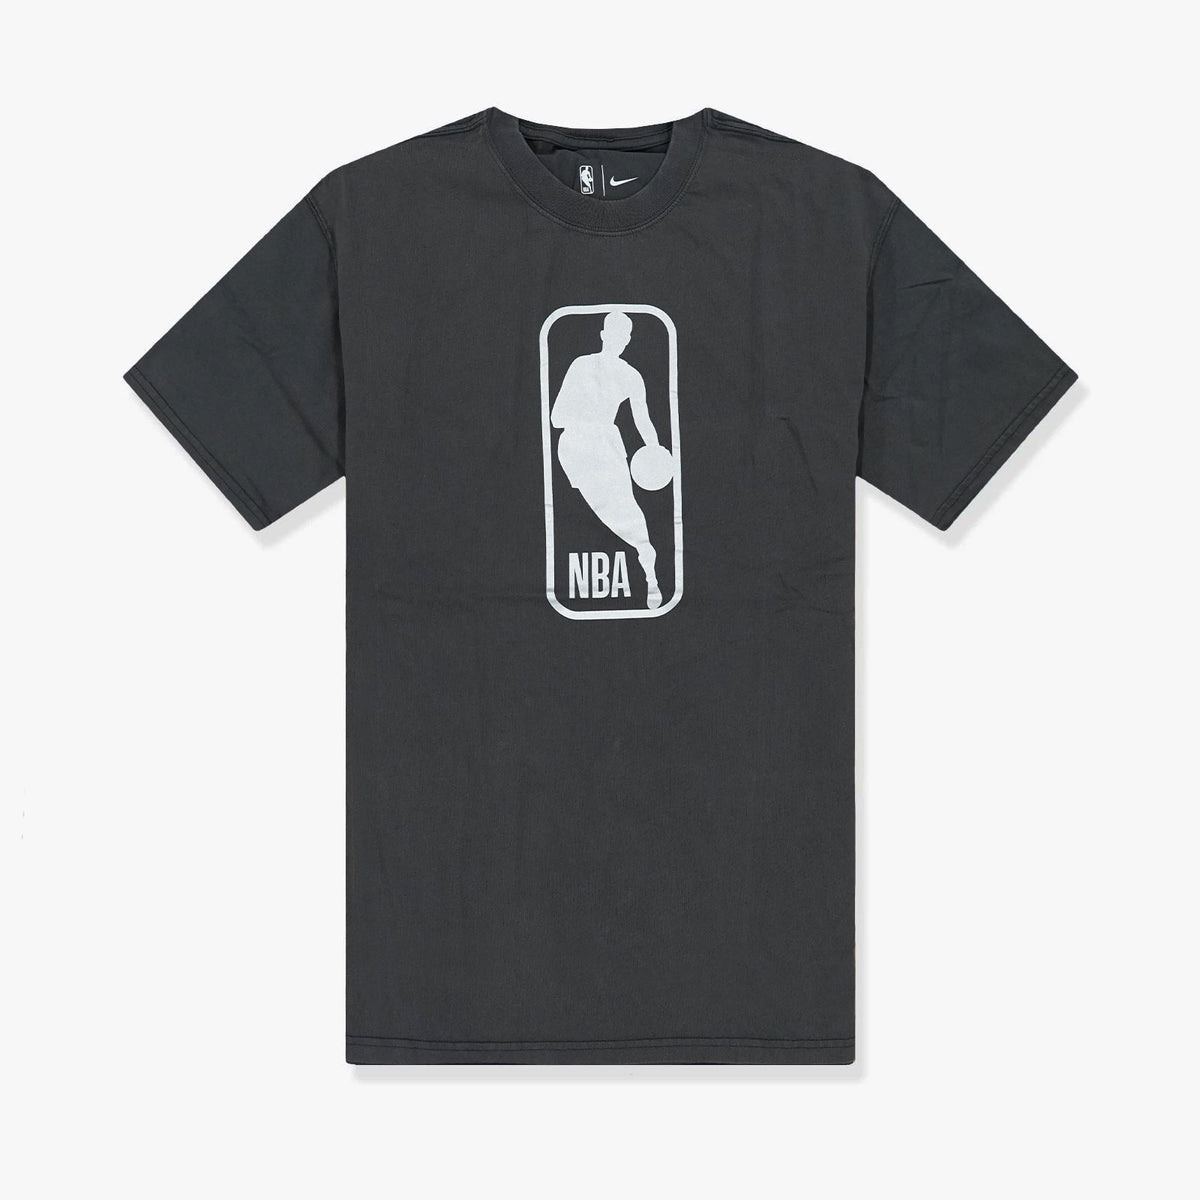 Team 31 Courtside NBA T-Shirt - Black